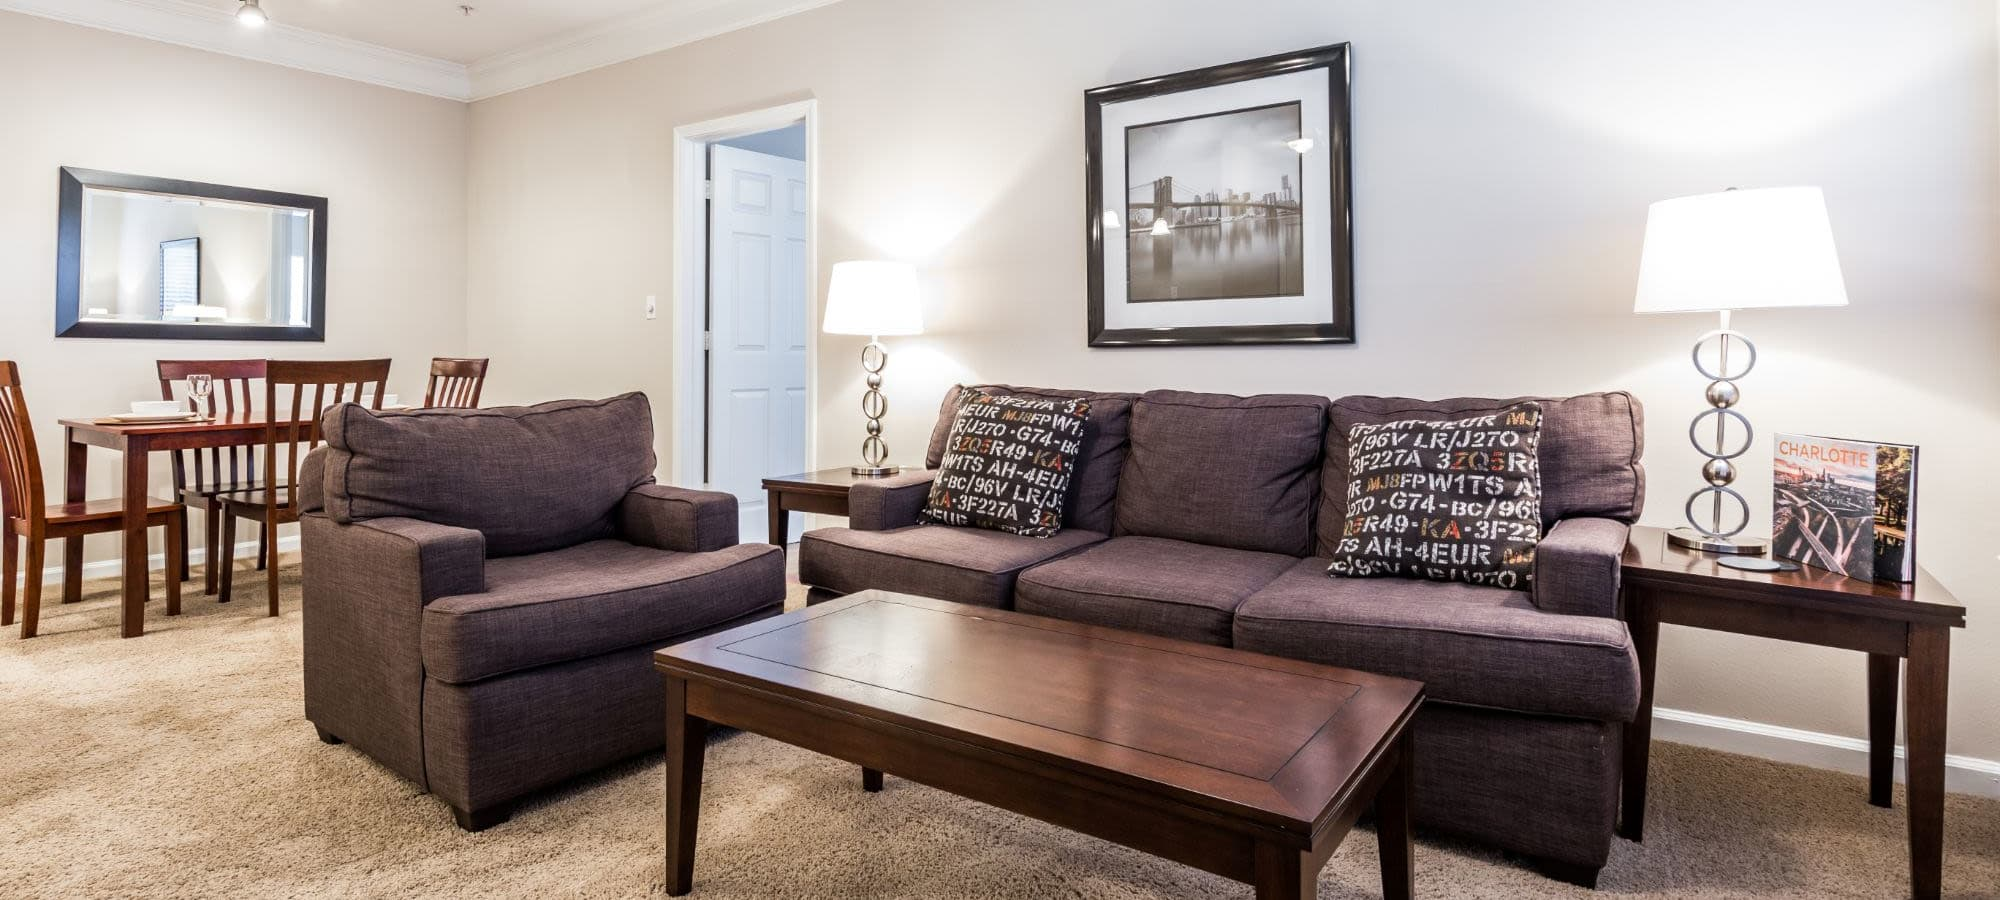 Floor plans at The Preserve at Ballantyne Commons in Charlotte, North Carolina